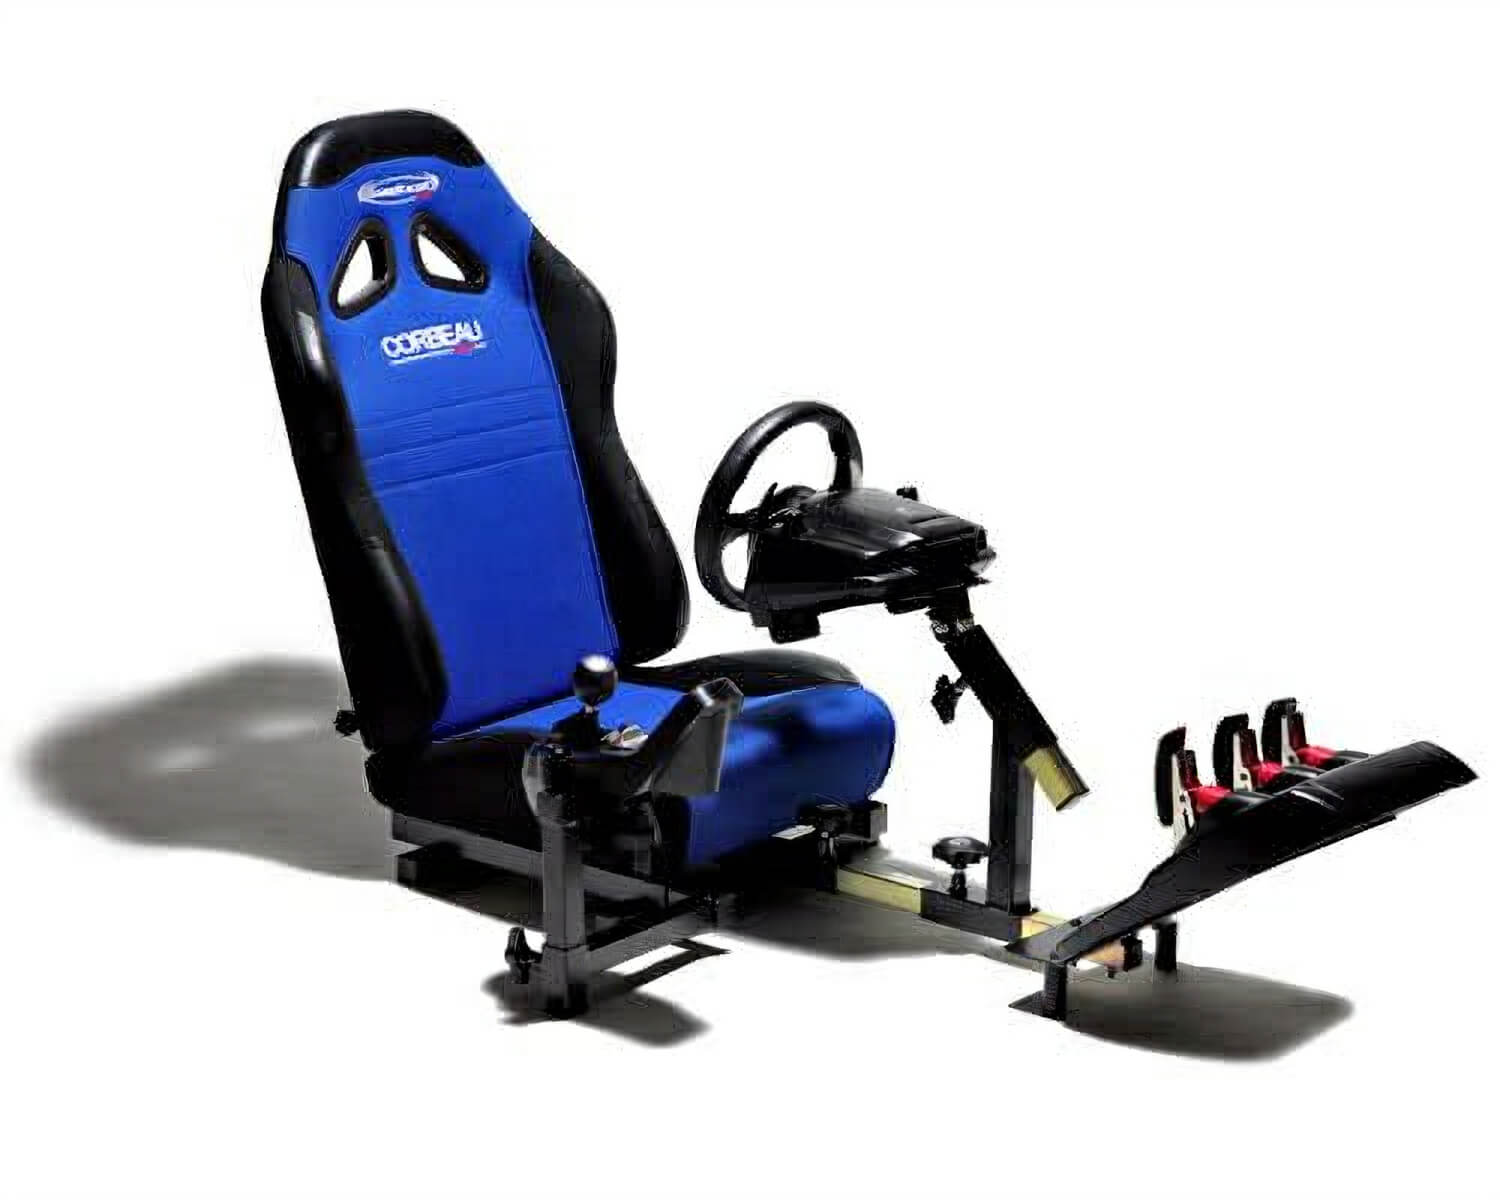 Racer Pro Driving Simulator Seat Xbox Ps3 Pc Compatible